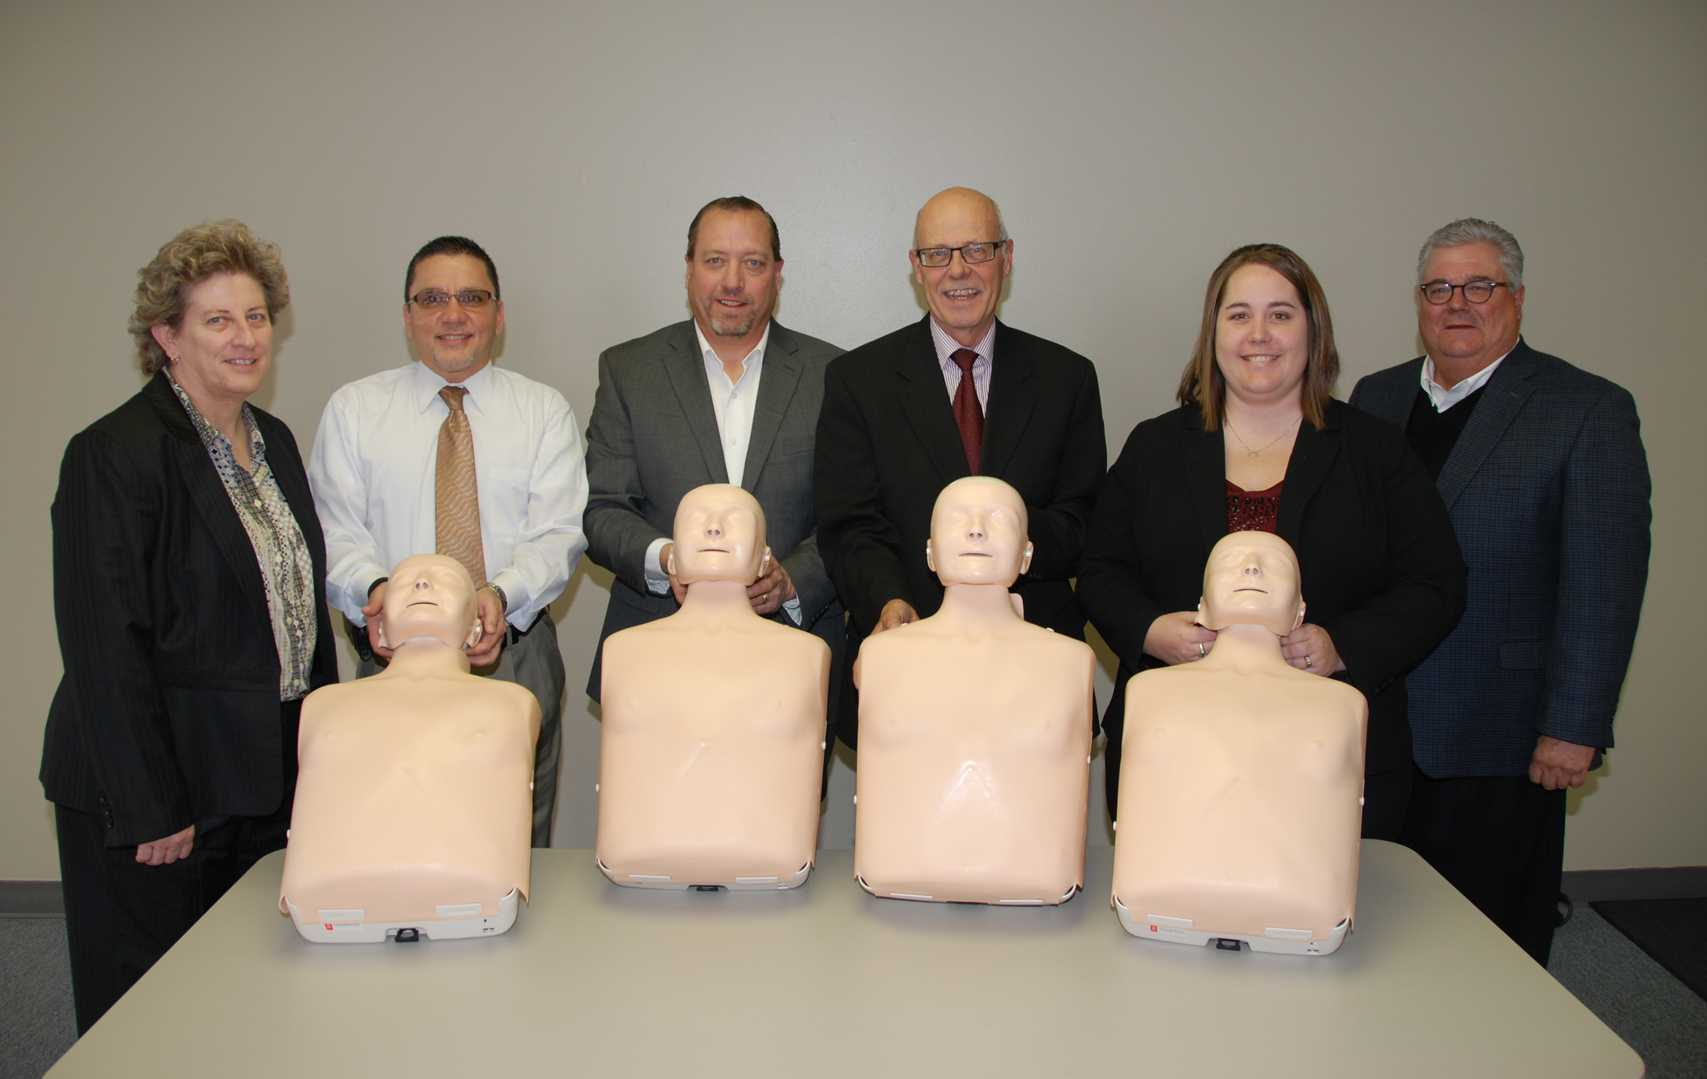 "Northeast Community College has received four ""Little Anne"" CPR training units from the National Automobile Dealers Charitable Foundation, the Nebraska New Car and Truck Dealers Association and three Norfolk new car dealerships. Pictured at a recent presentation are (from left) Michele Gill, dean of Health and Wellness at Northeast Community College, Al Rajee, Cornhusker Auto and Cornhusker Imports, Andy Swanson, Norfolk GM Auto Center, Darrell Novacek, Courtesy Ford Lincoln, Heather Claussen, director of Allied Health at Northeast, and Pat Sullivan, Nebraska New Car and Truck Dealers Association. (Courtesy Photo)"